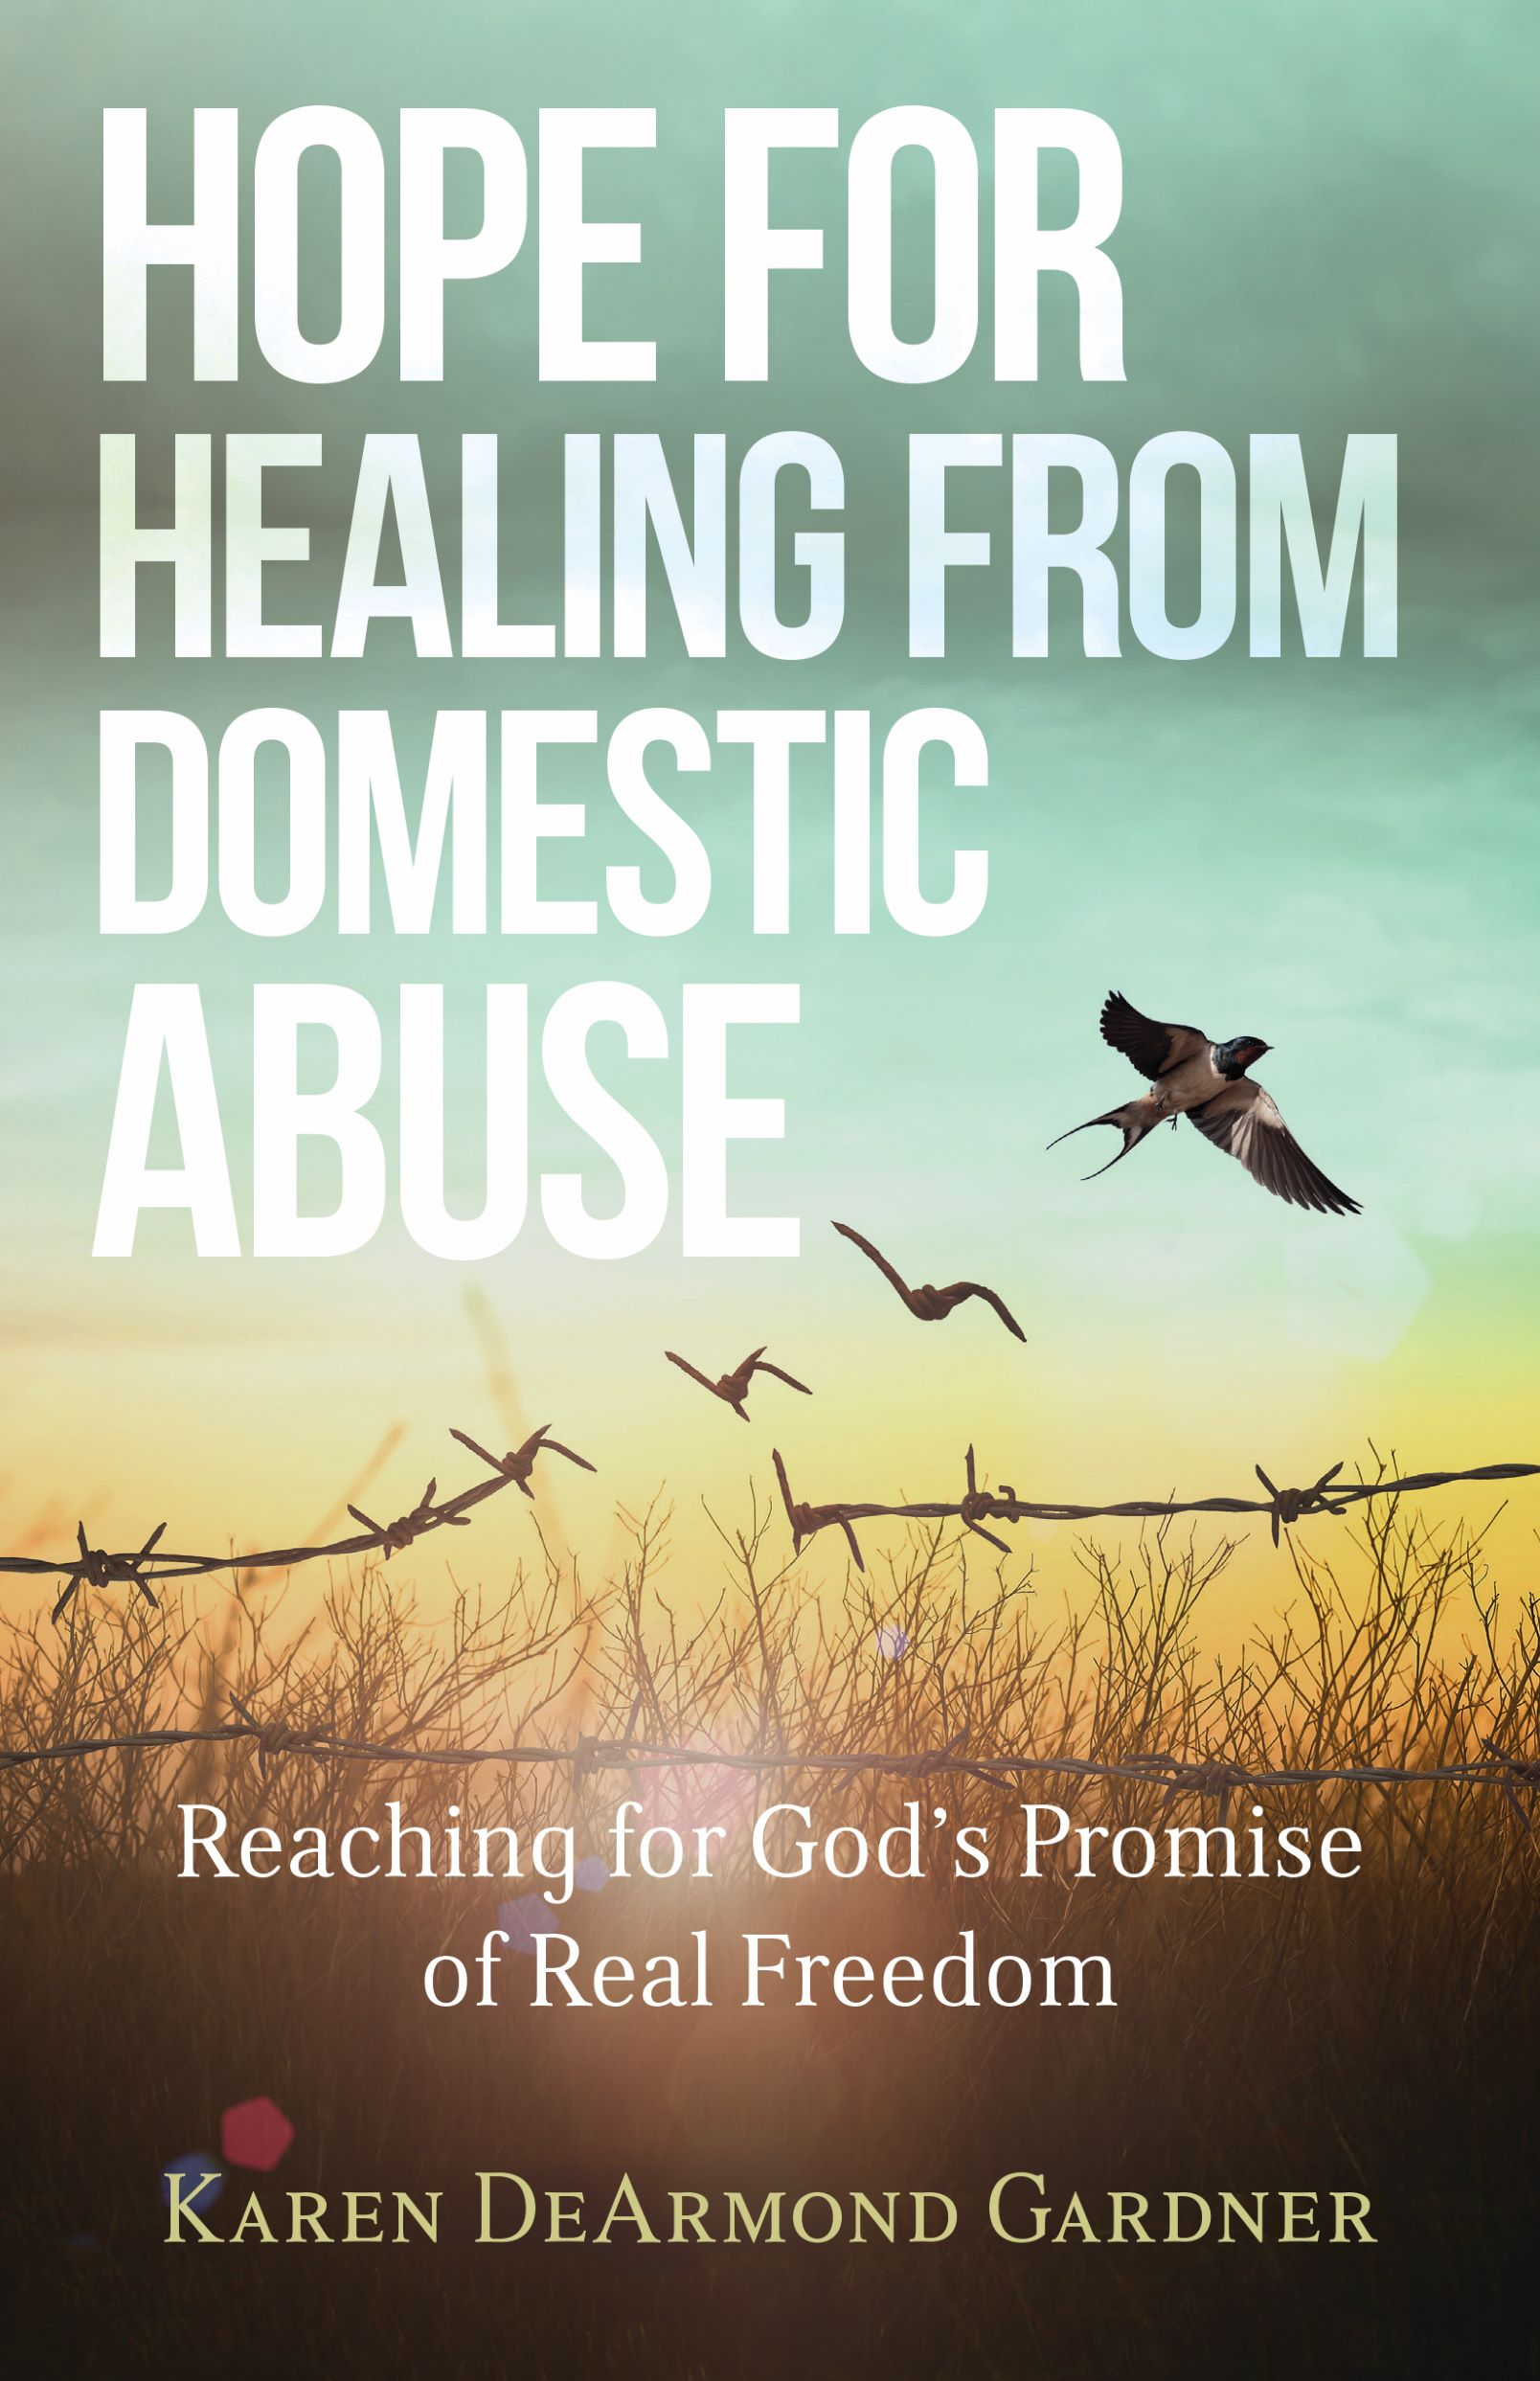 Hope for Healing from Domestic Abuse